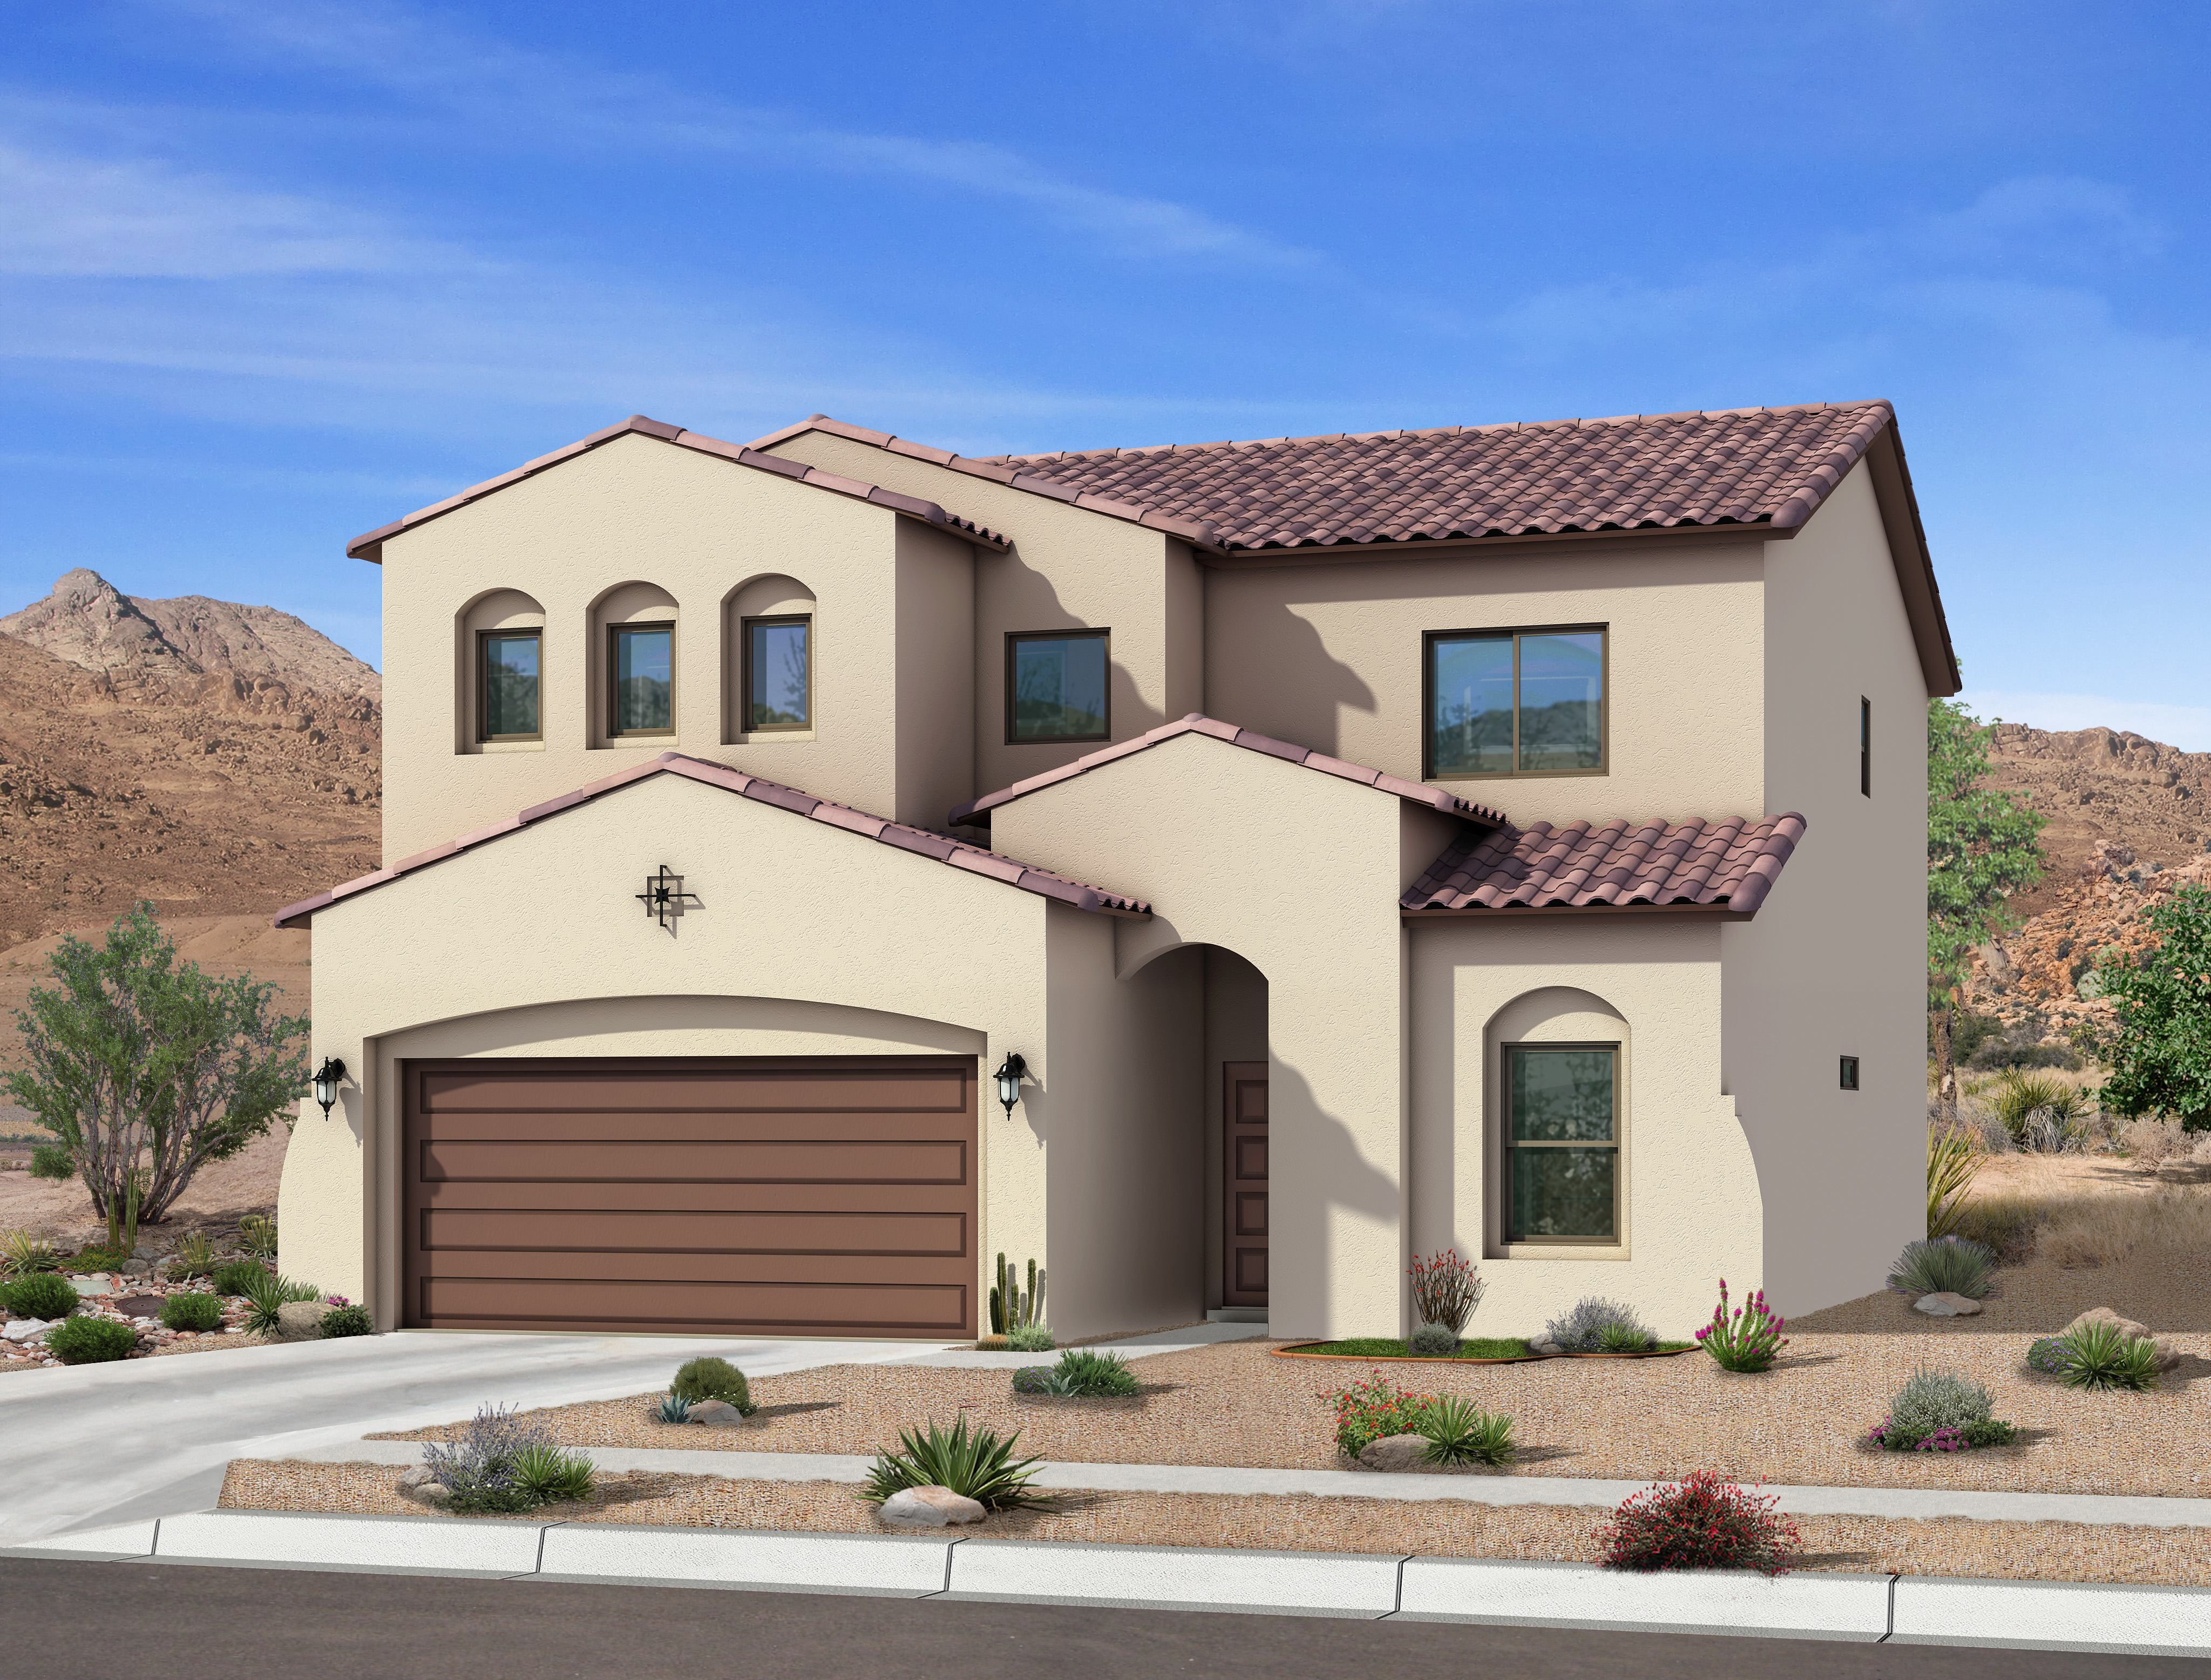 Homes For Sale By Owner Albuquerque Nm Fsbo Albuquerque